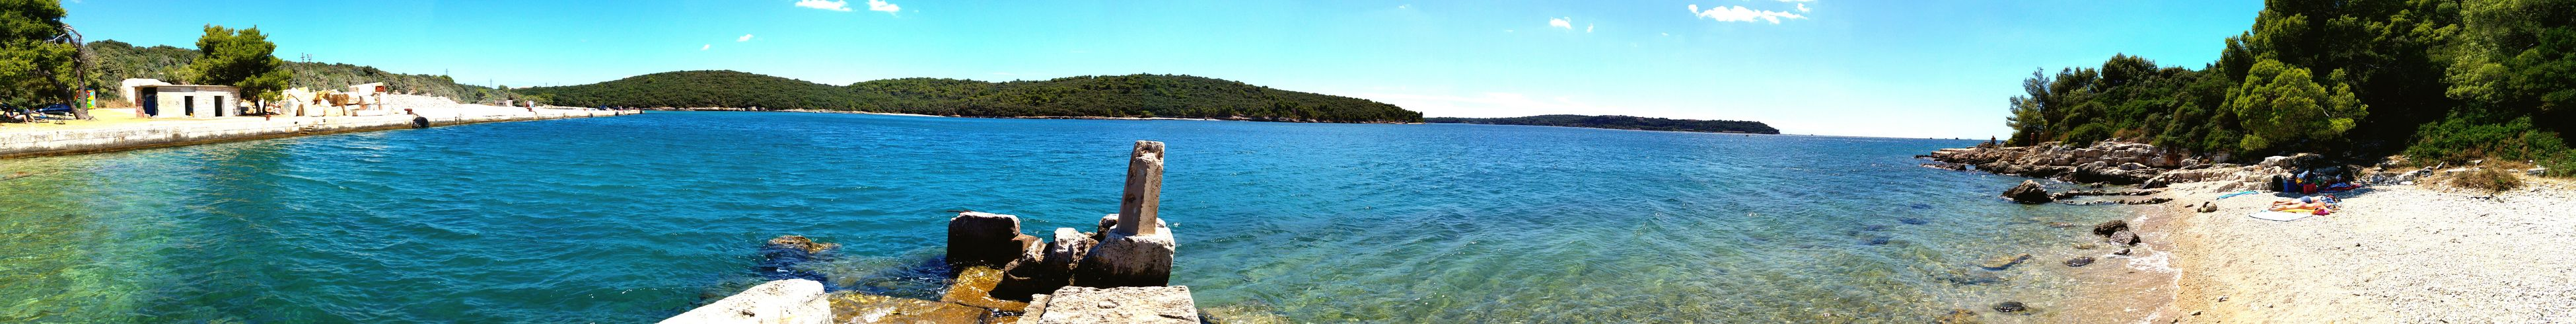 Panoramic Water Sea Sky Blue Nature Outdoors No People Tourism Day